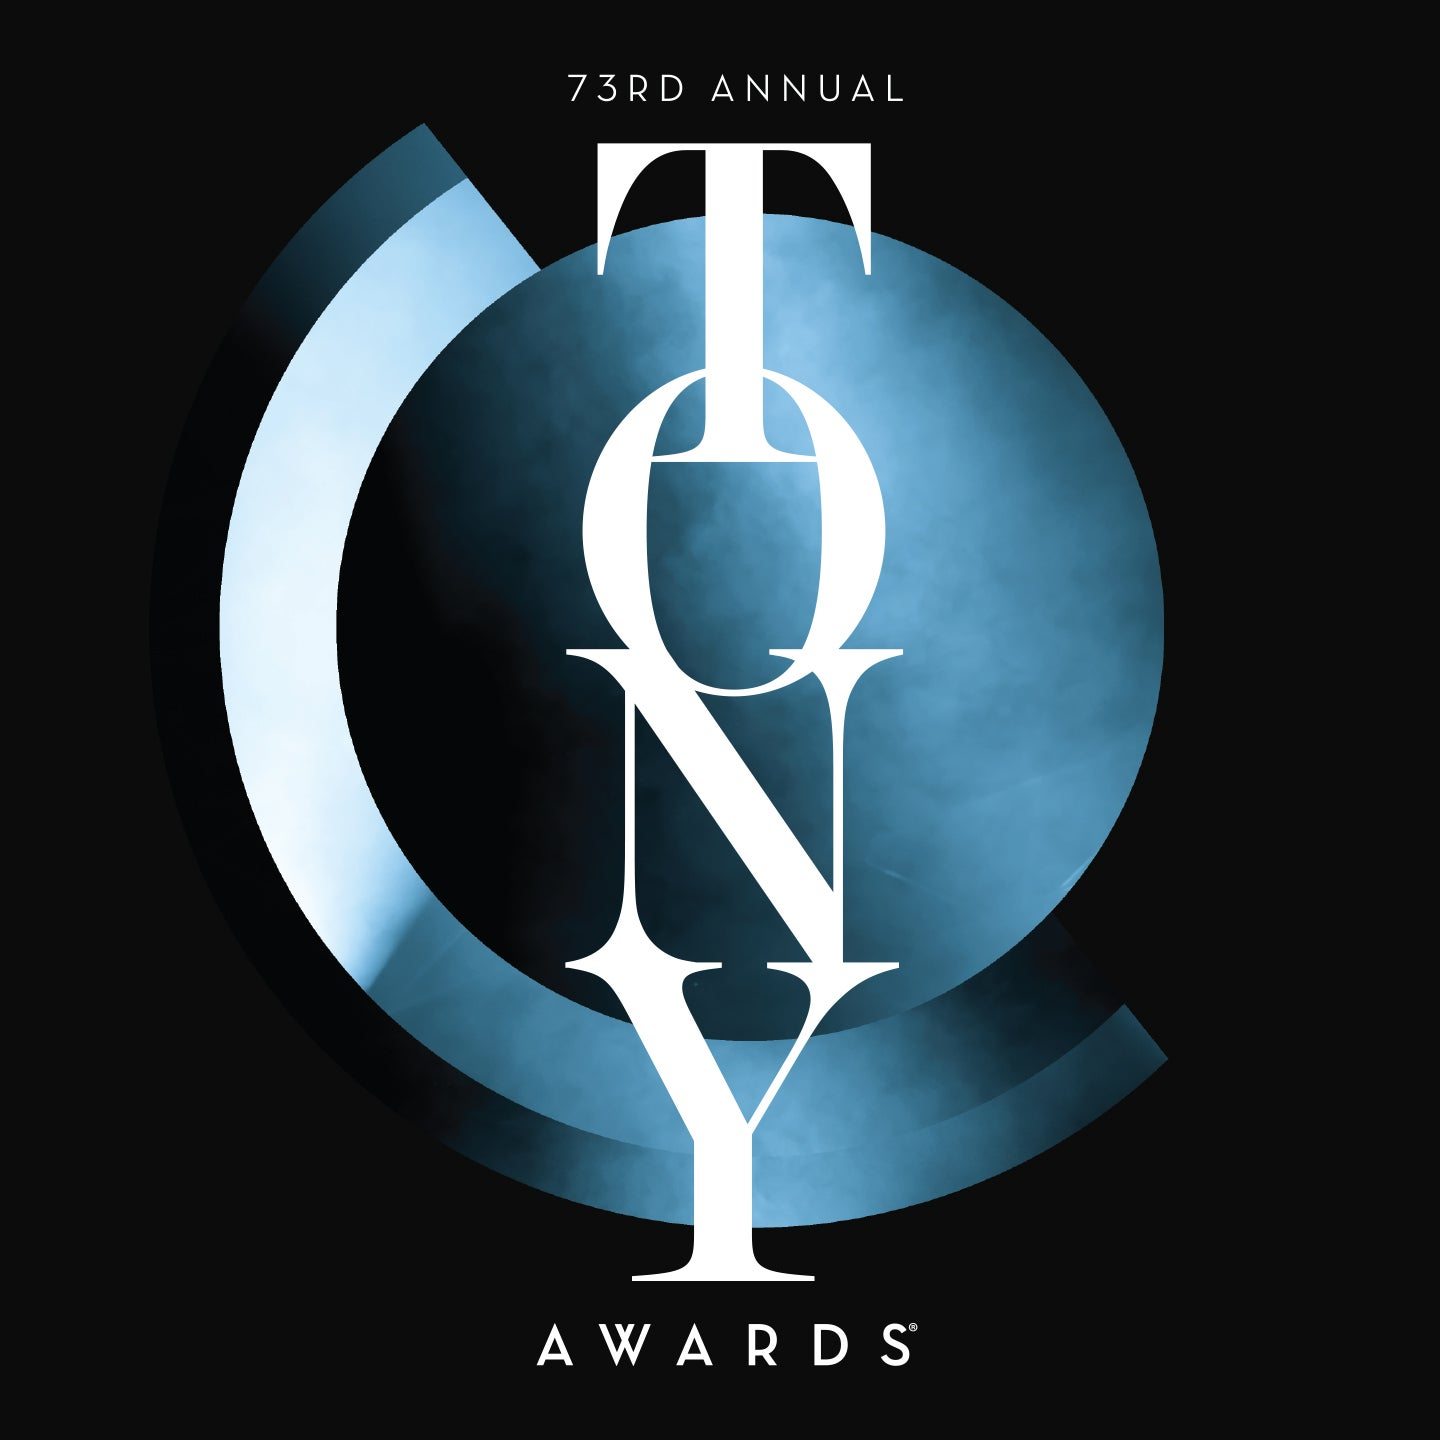 15th Annual Tony Awards Viewing Party